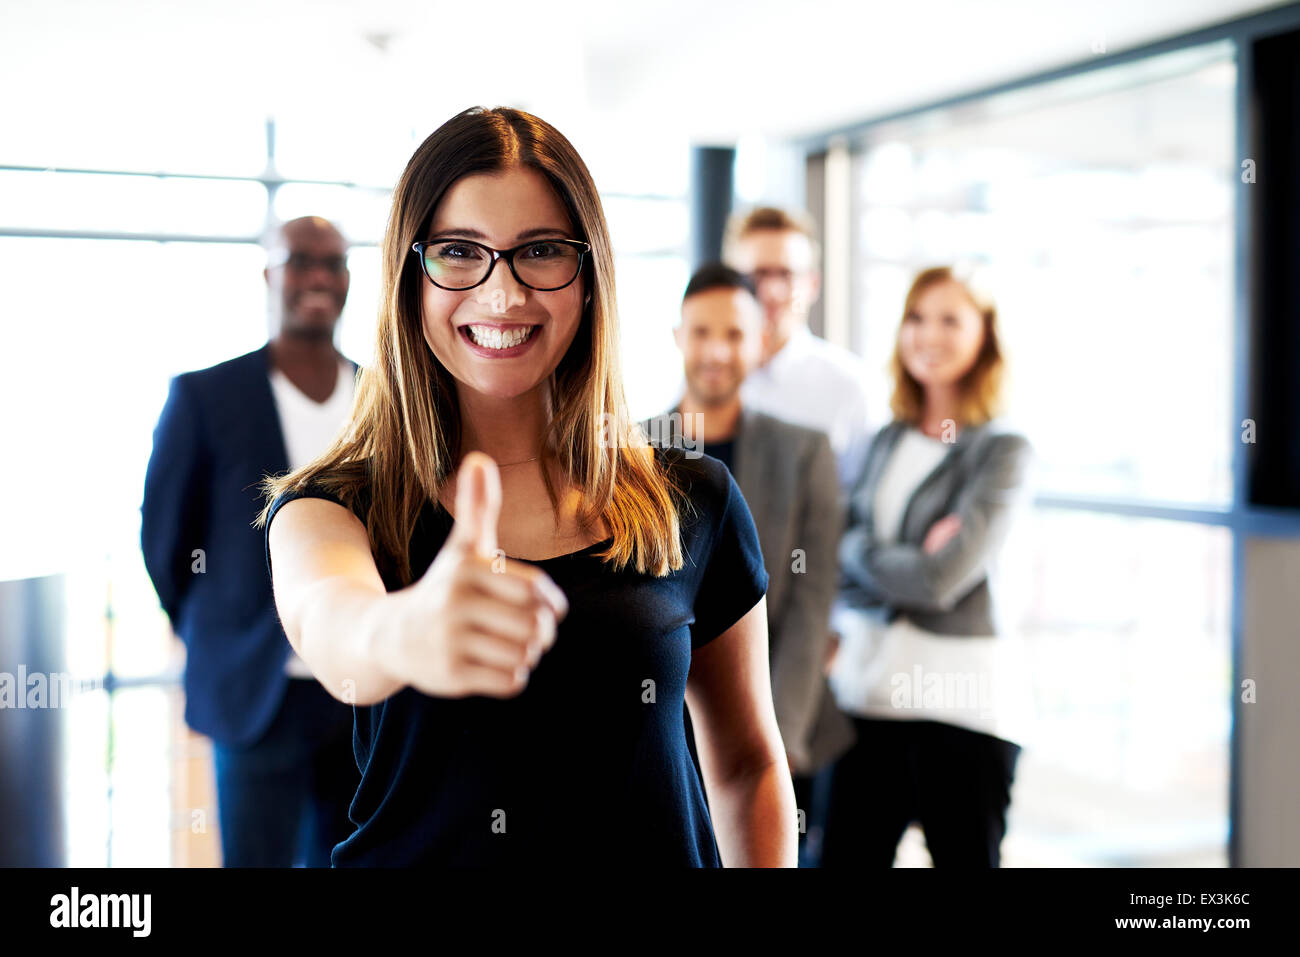 Young white female executive standing in front of colleagues making thumbs up sign. - Stock Image